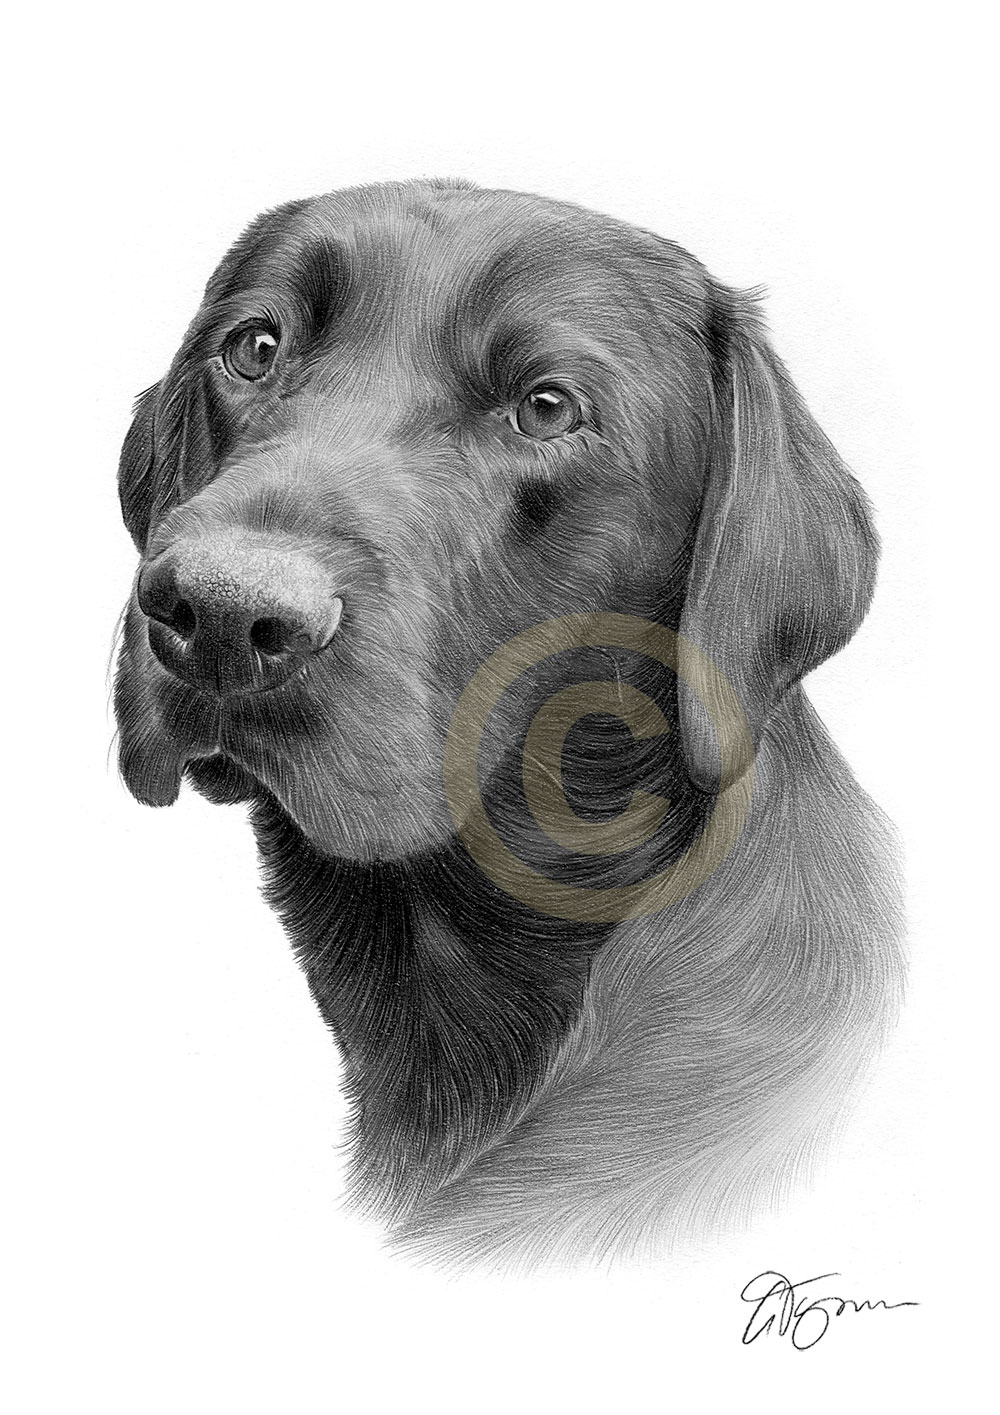 Pencil drawing commission of a retriever called Harley by artist Gary Tymon